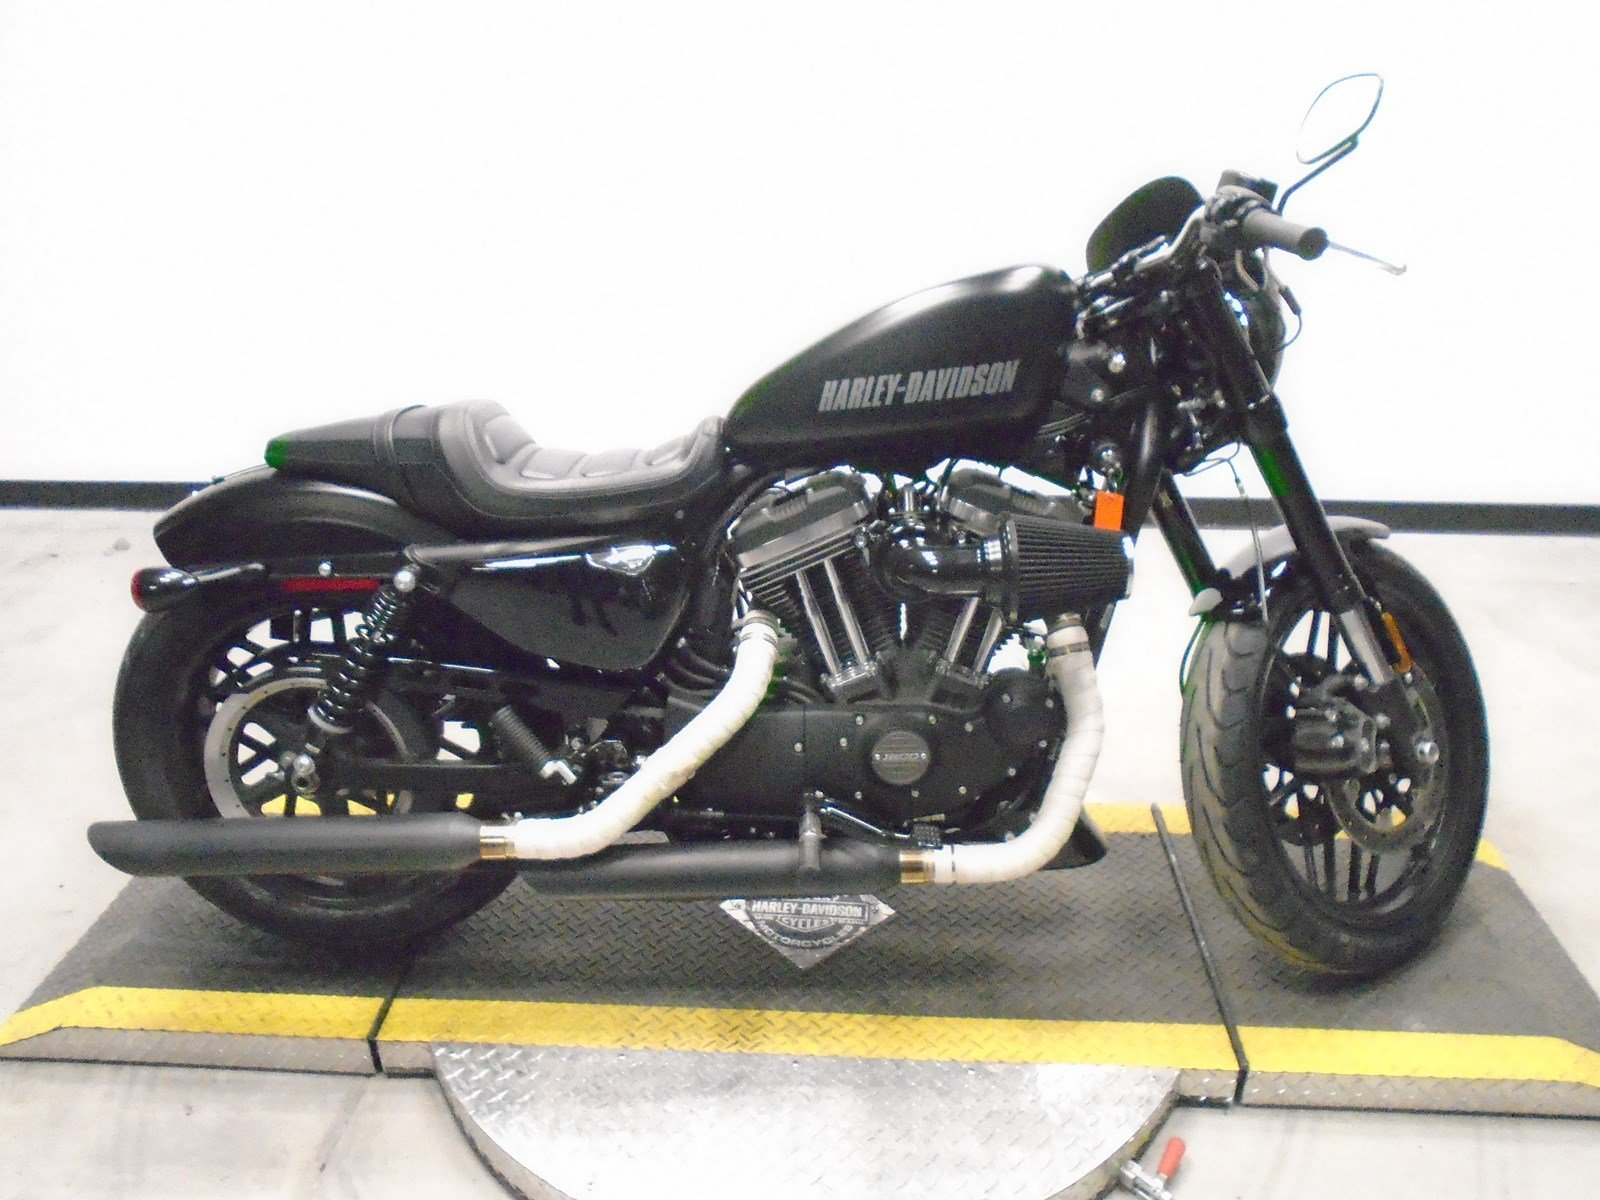 Pre Owned 2017 Harley Davidson Sportster Roadster XL1200CX